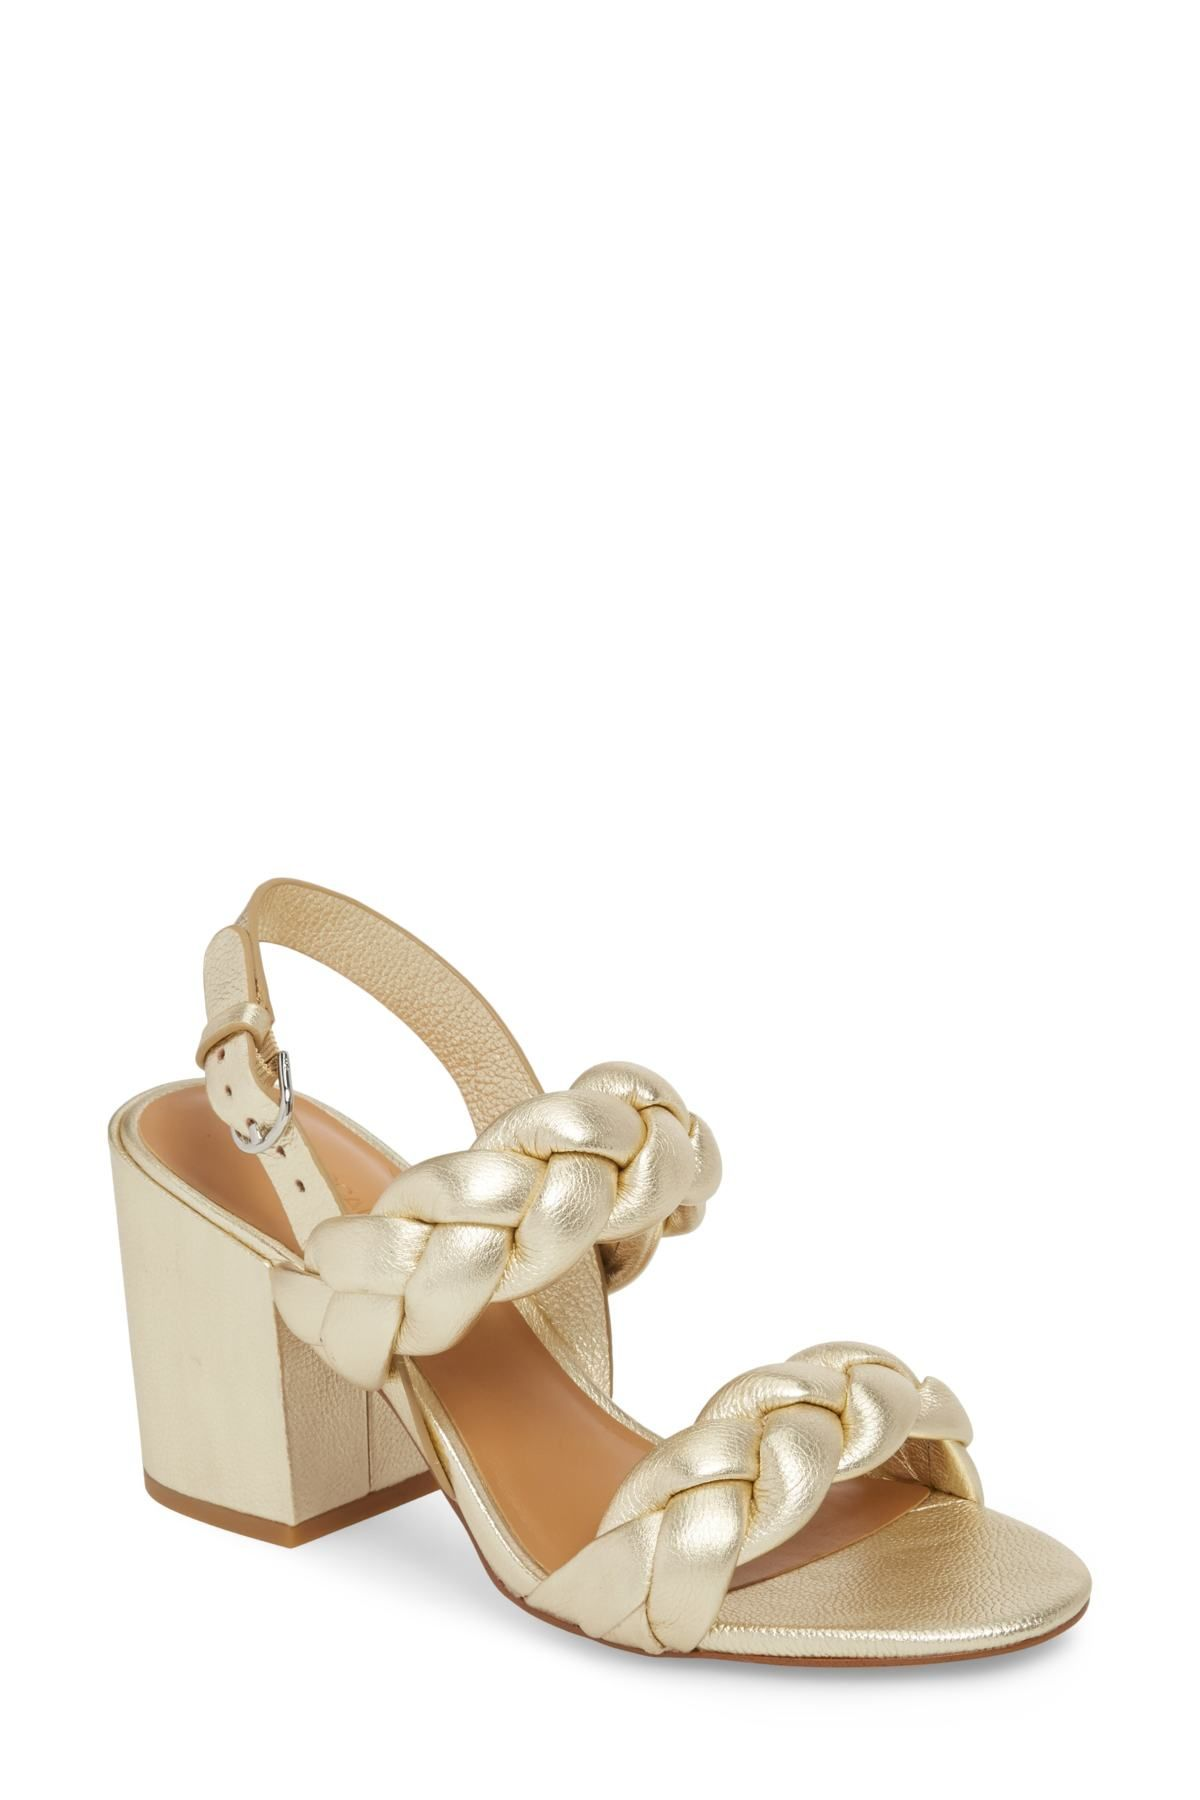 aaf8b52138b Rebecca Minkoff - Candance Block Heel Sandal (Women) is now 52% off. Free  Shipping on orders over  100.